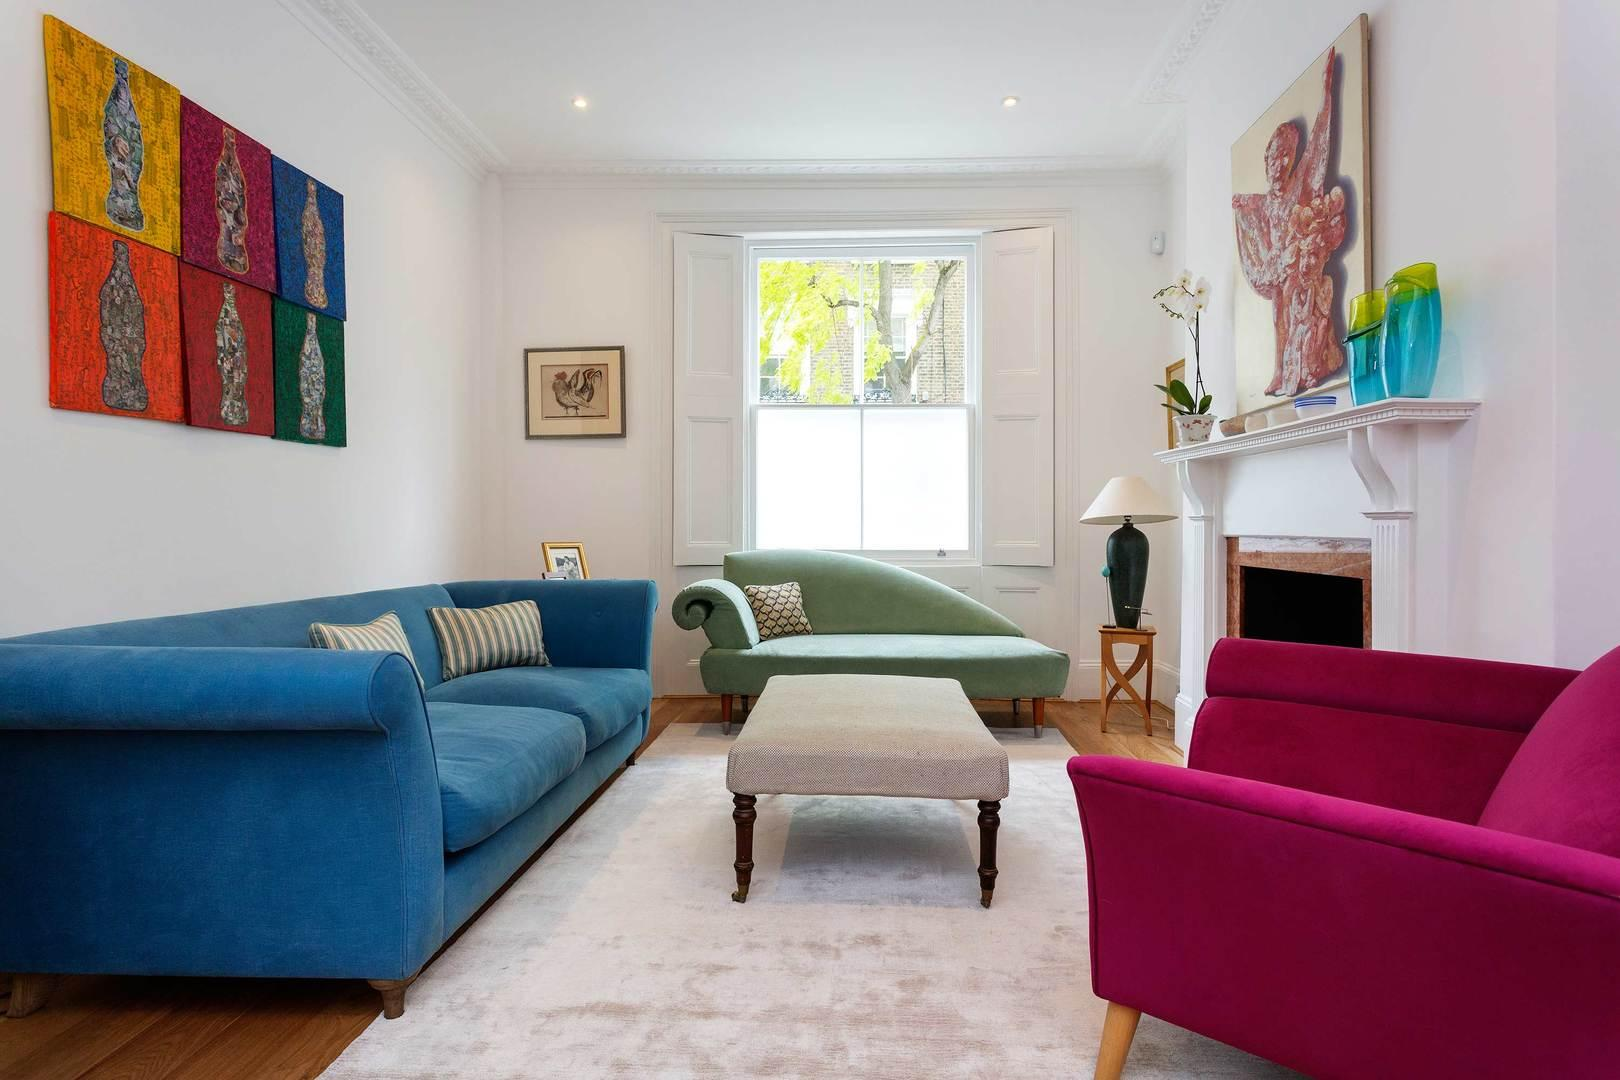 Property Image 1 - Classic 4 bedroom Upscale Family House in Primrose Hill